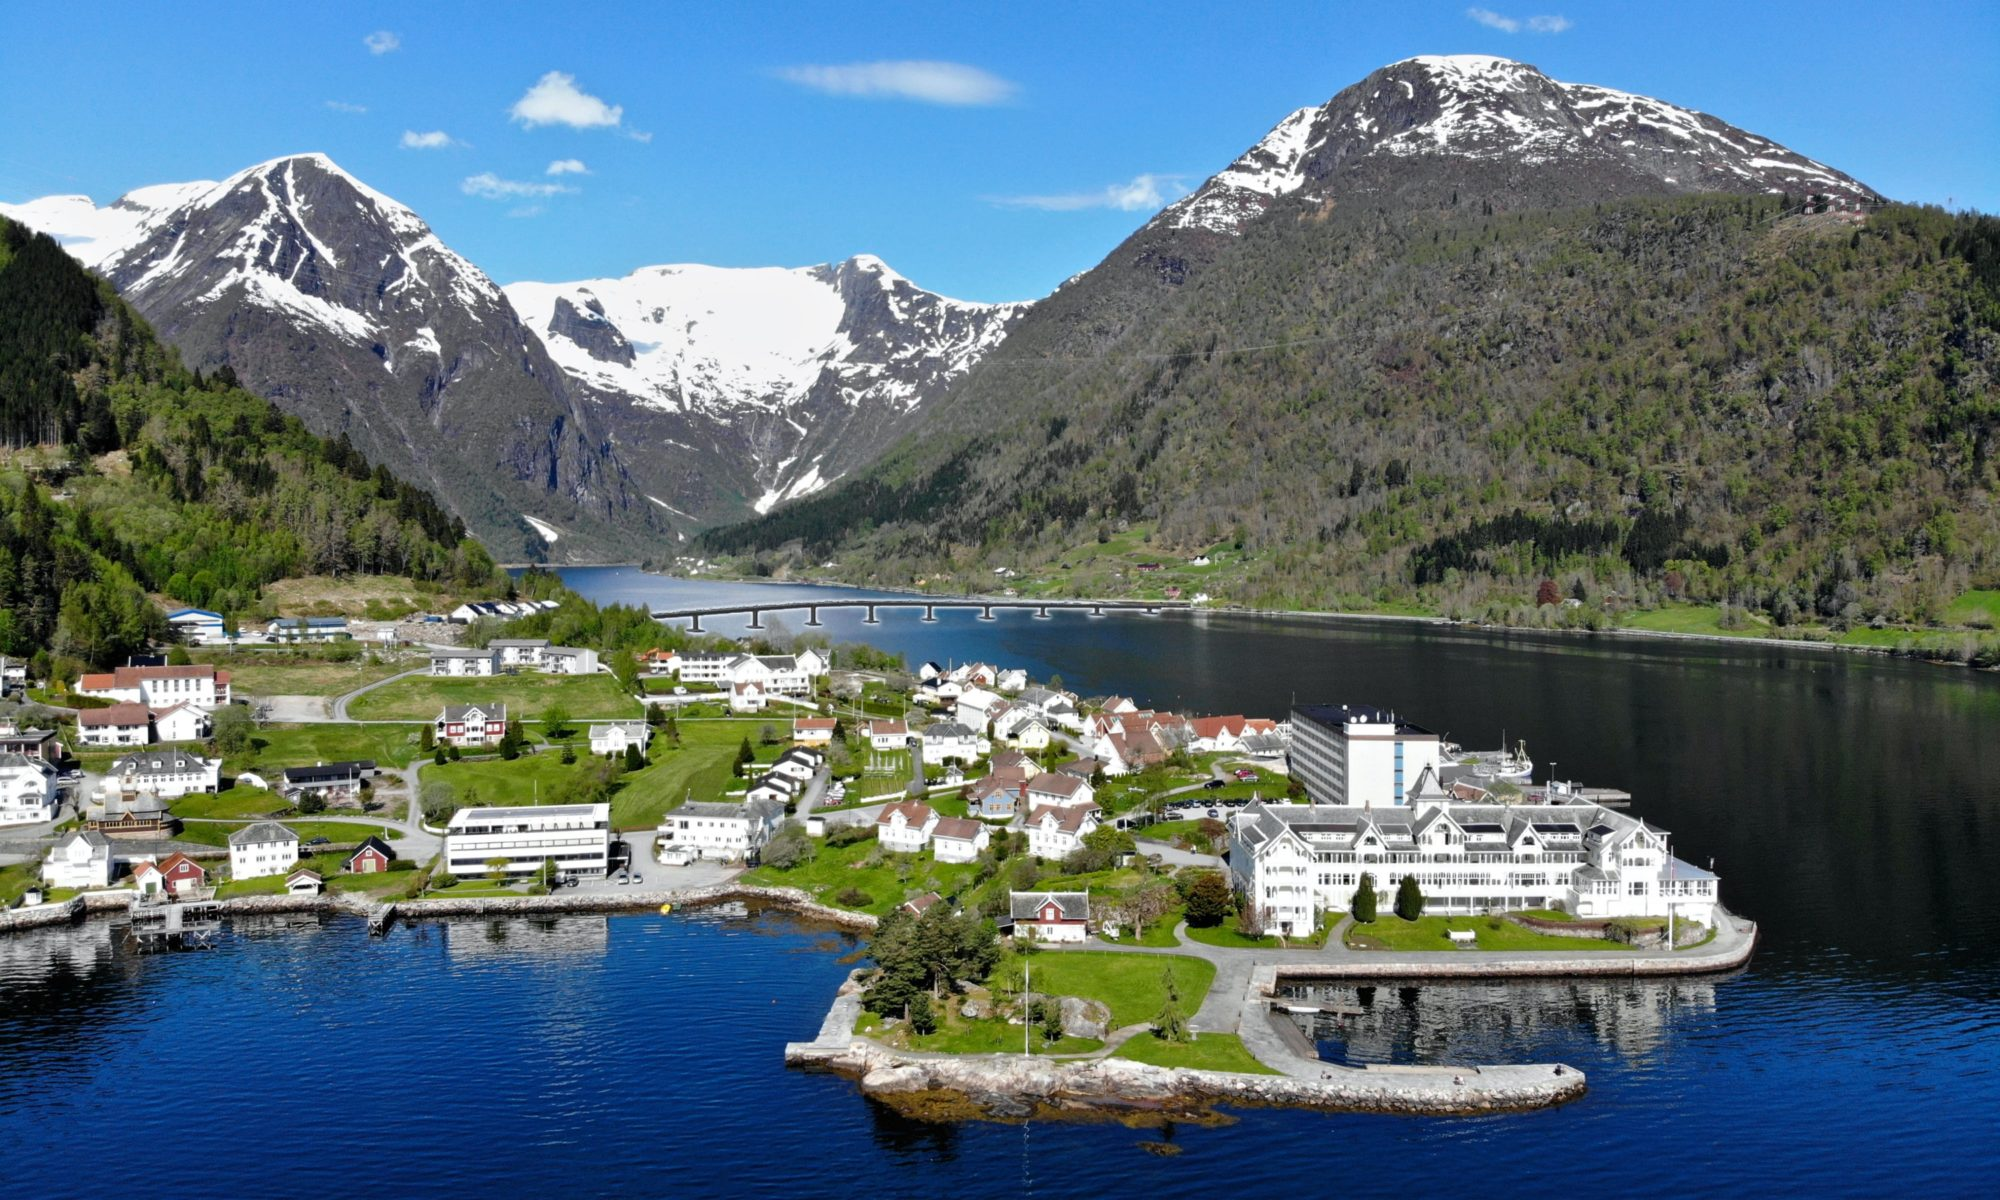 FJORDS NORWAY - Balestrand by the Sognefjord